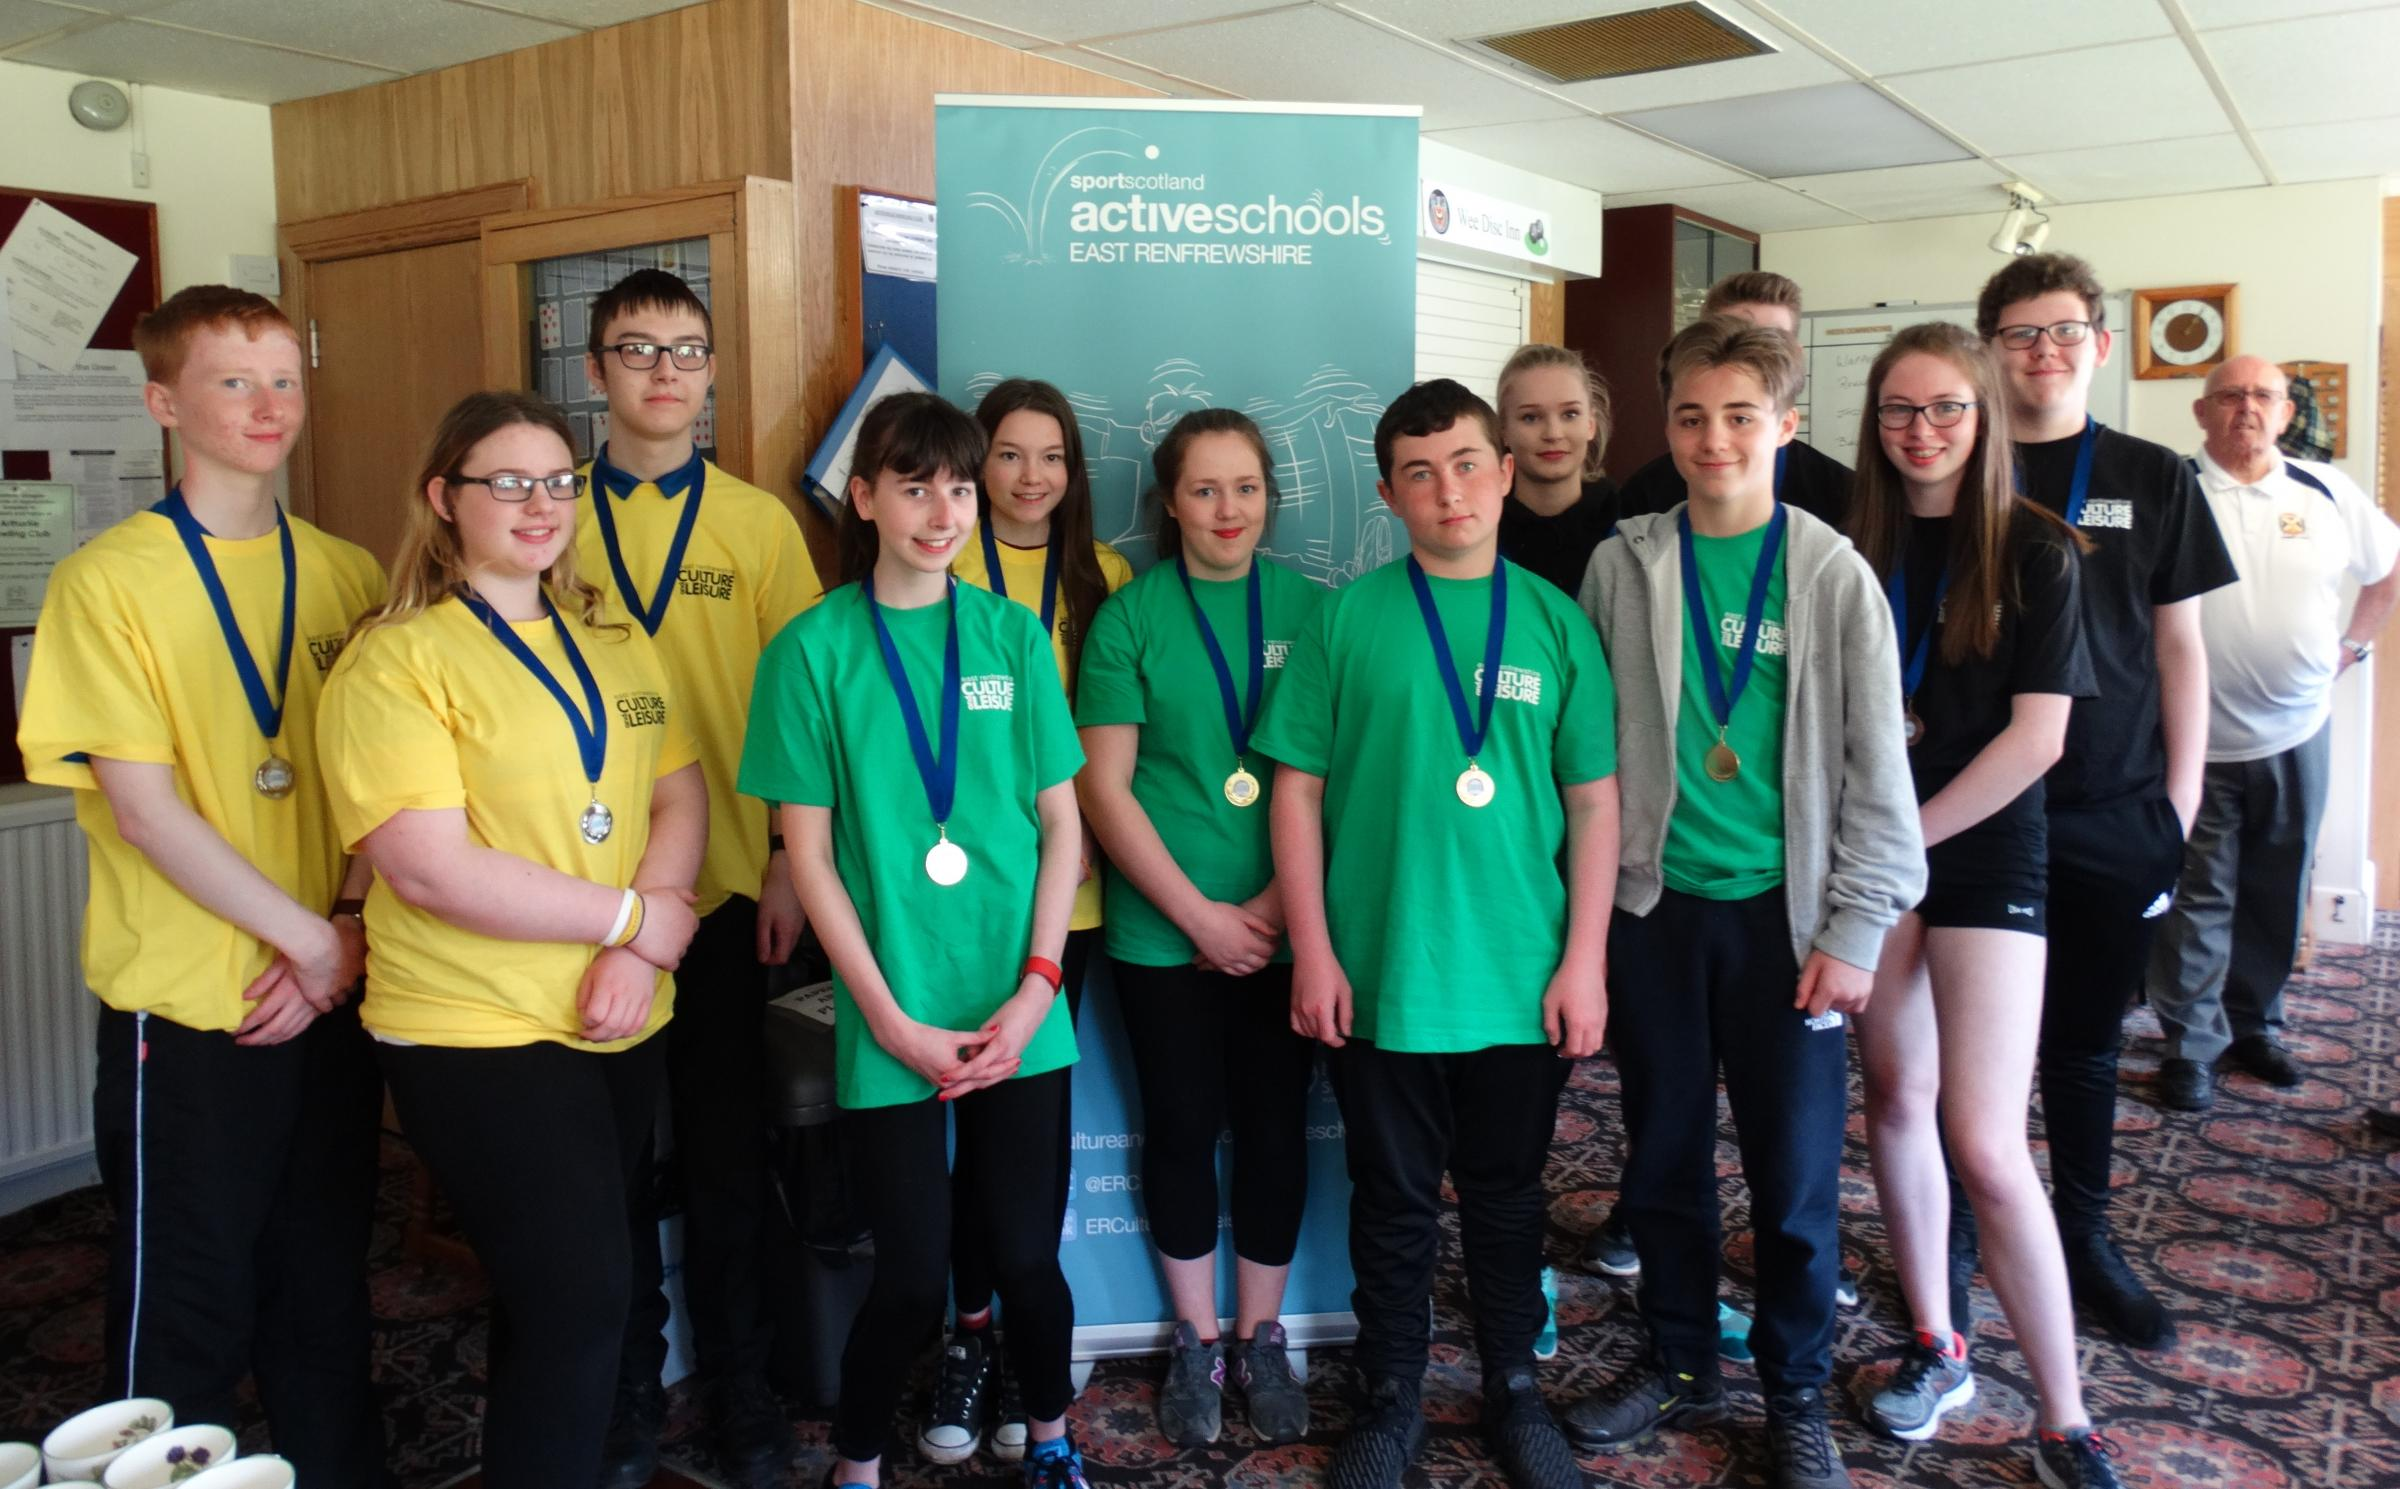 Pictured are the winners of the East Renfrewshire Secondary Games